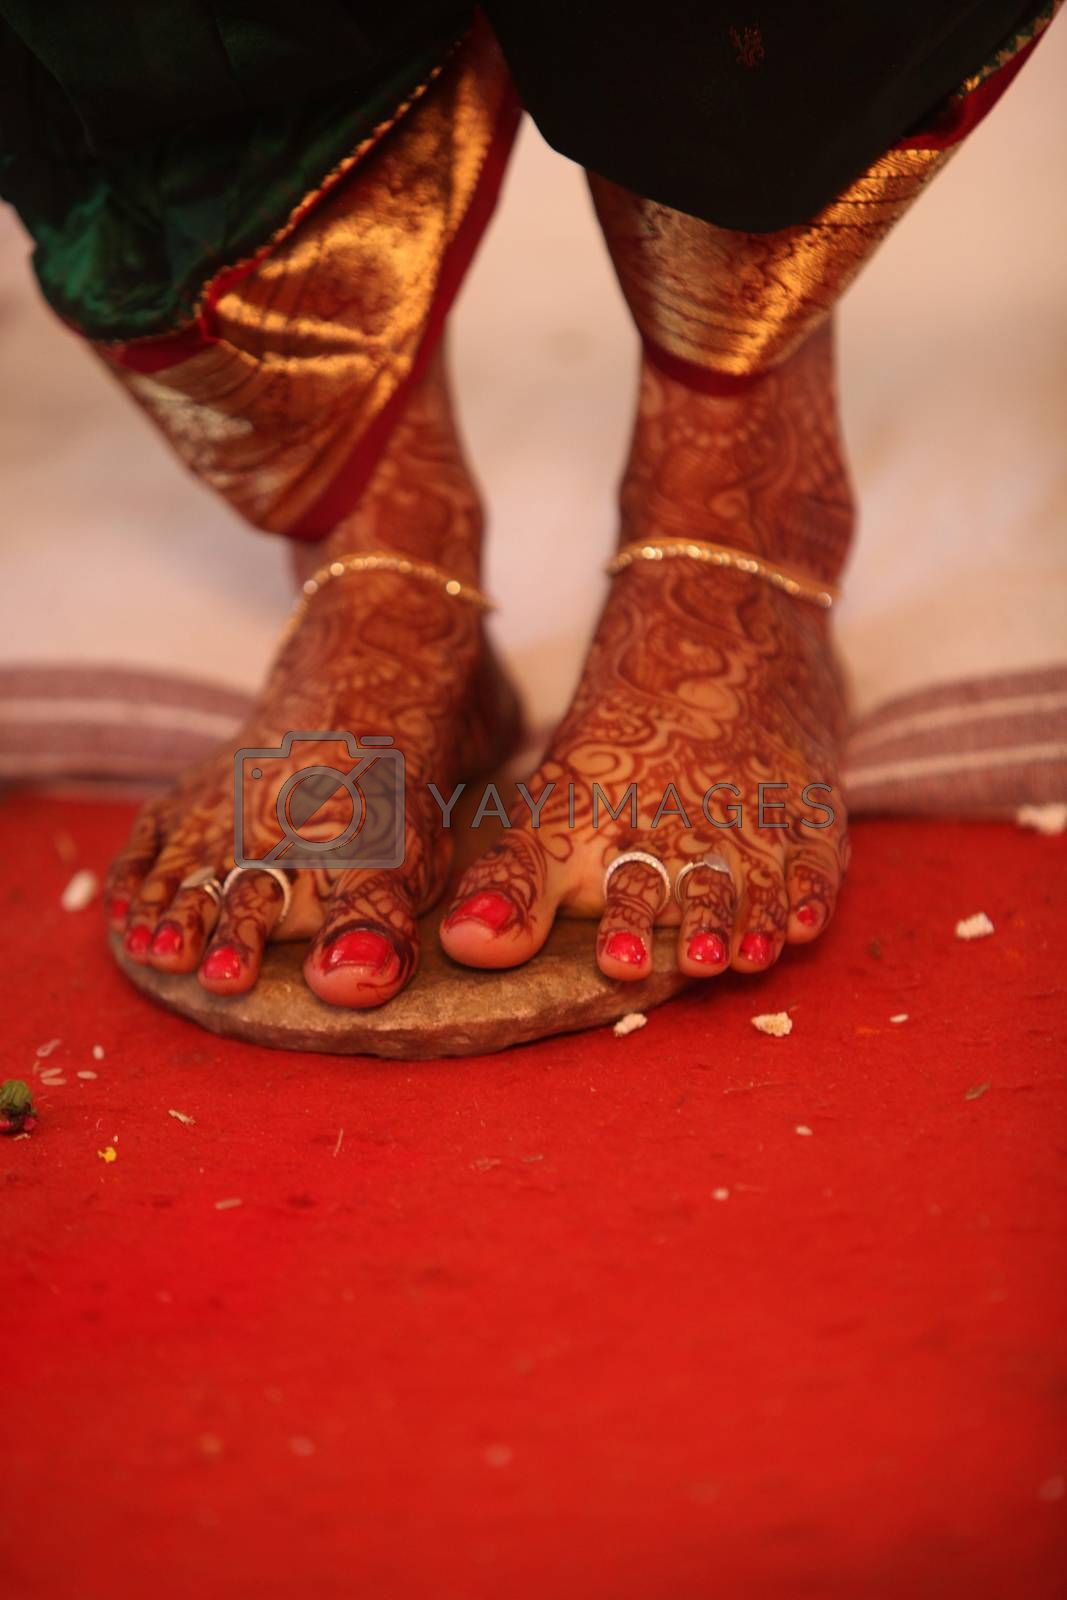 The feet of an Indian bride during the ritual in a traditional Hindu wedding.